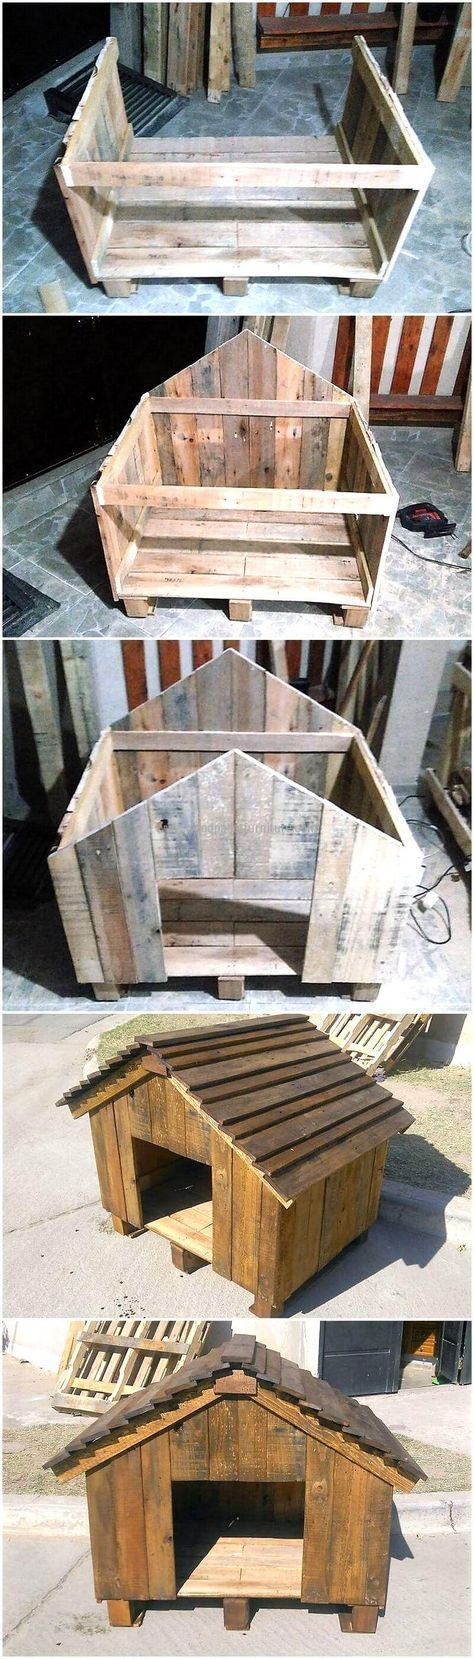 DIY Wooden Pallets Made Dog House 808